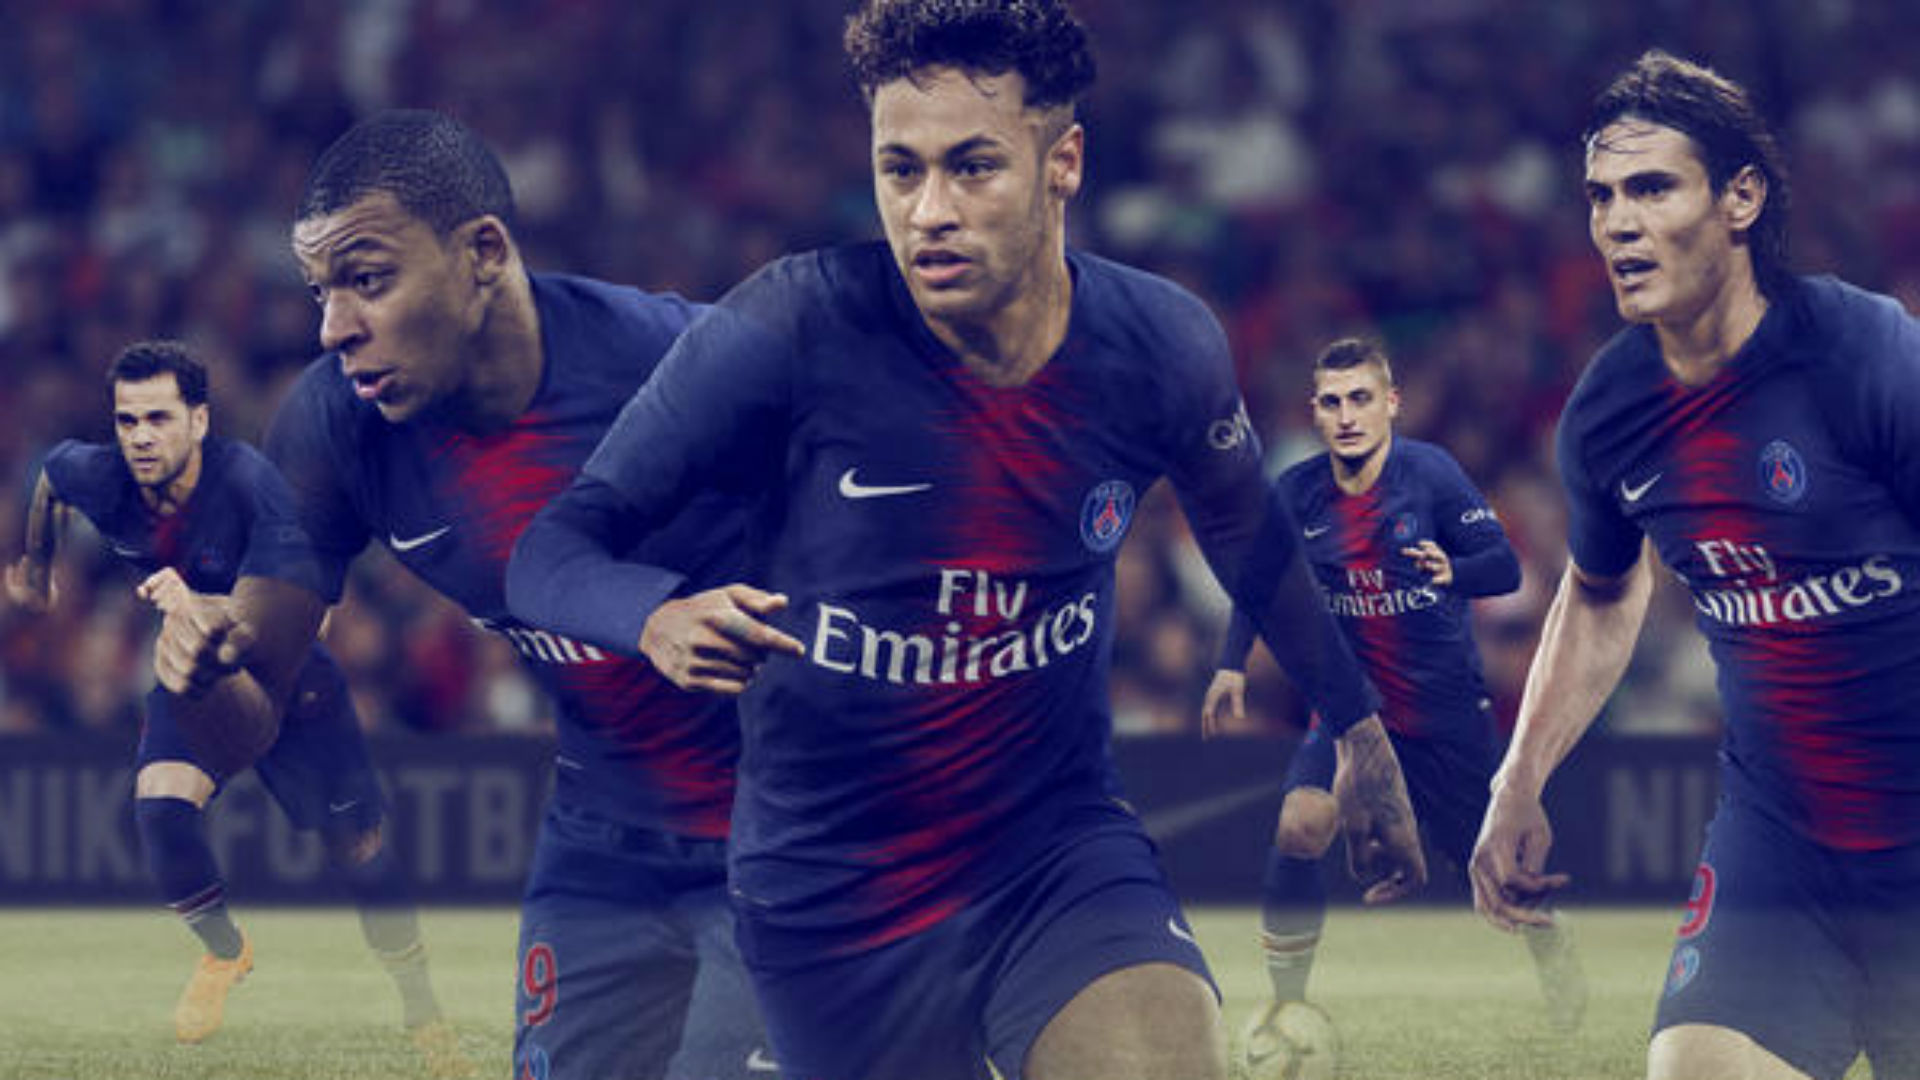 PSG home kit 18-19